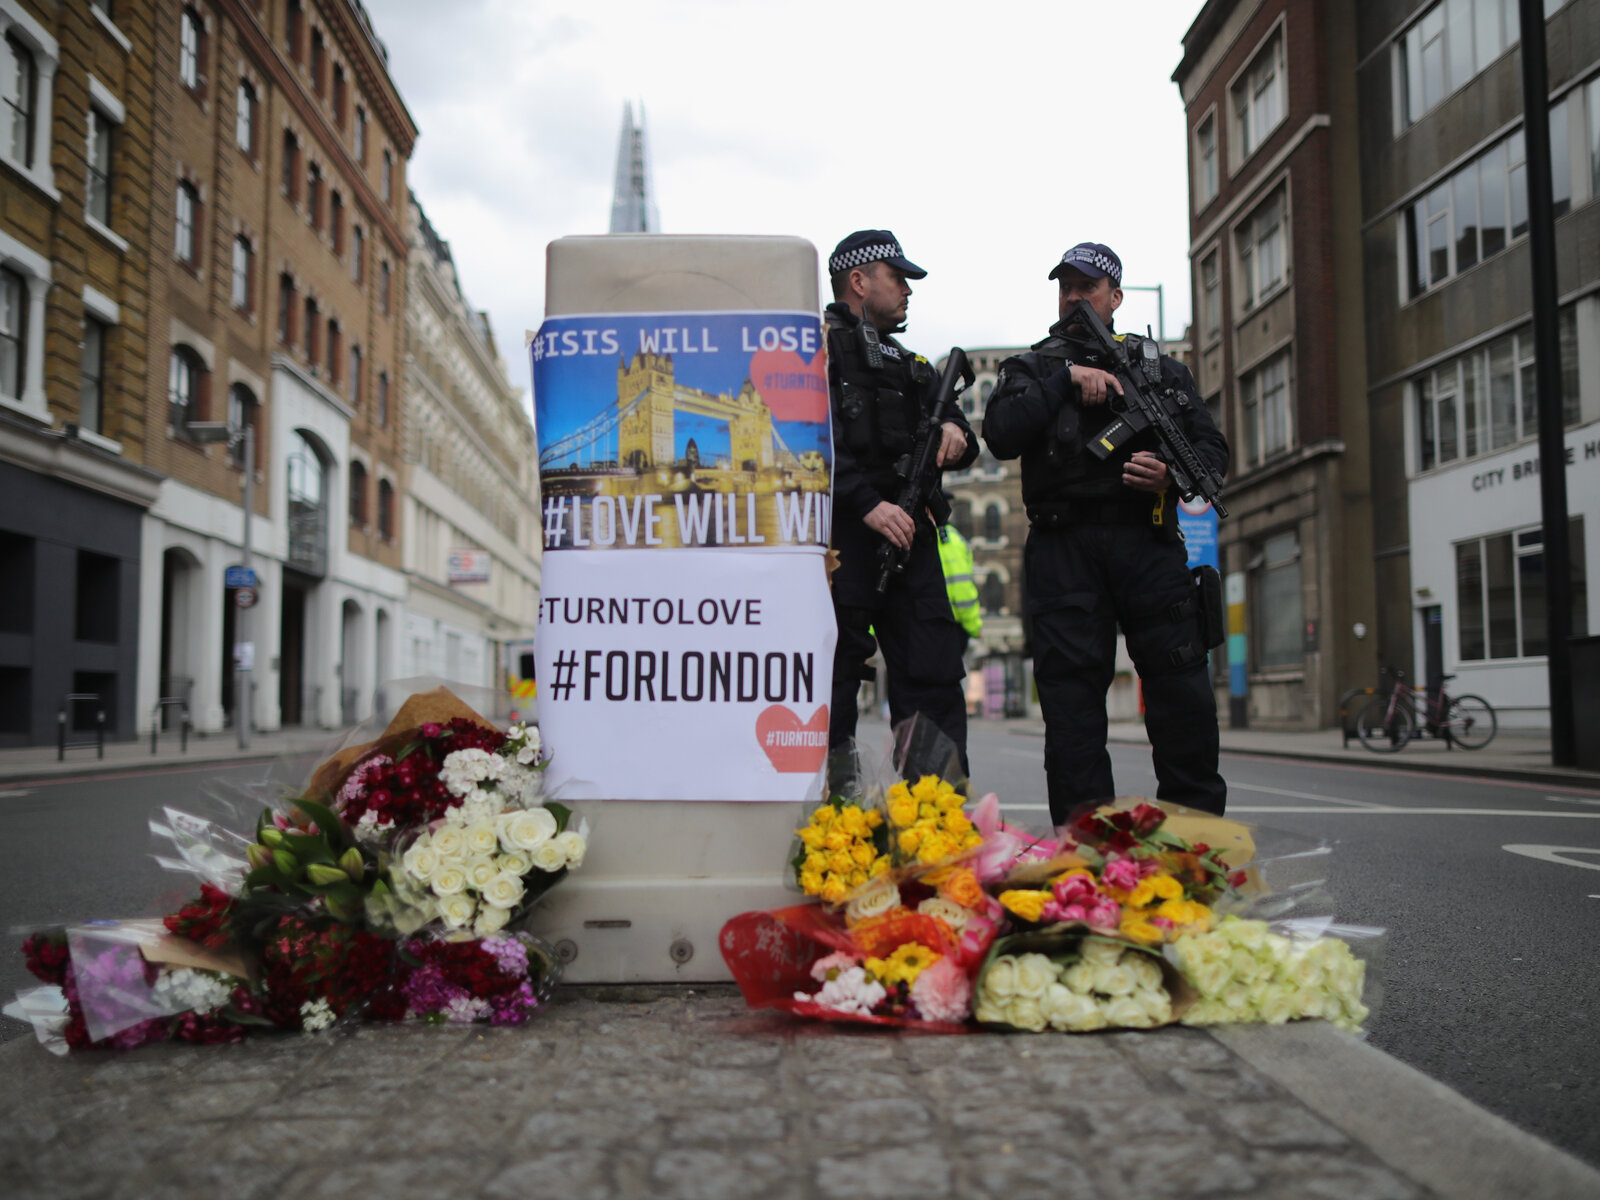 Police stand guard behind flowers left in memorial on Southwark Street near the scene of Saturday's terror attack in London. (Christopher Furlong/Getty Images)